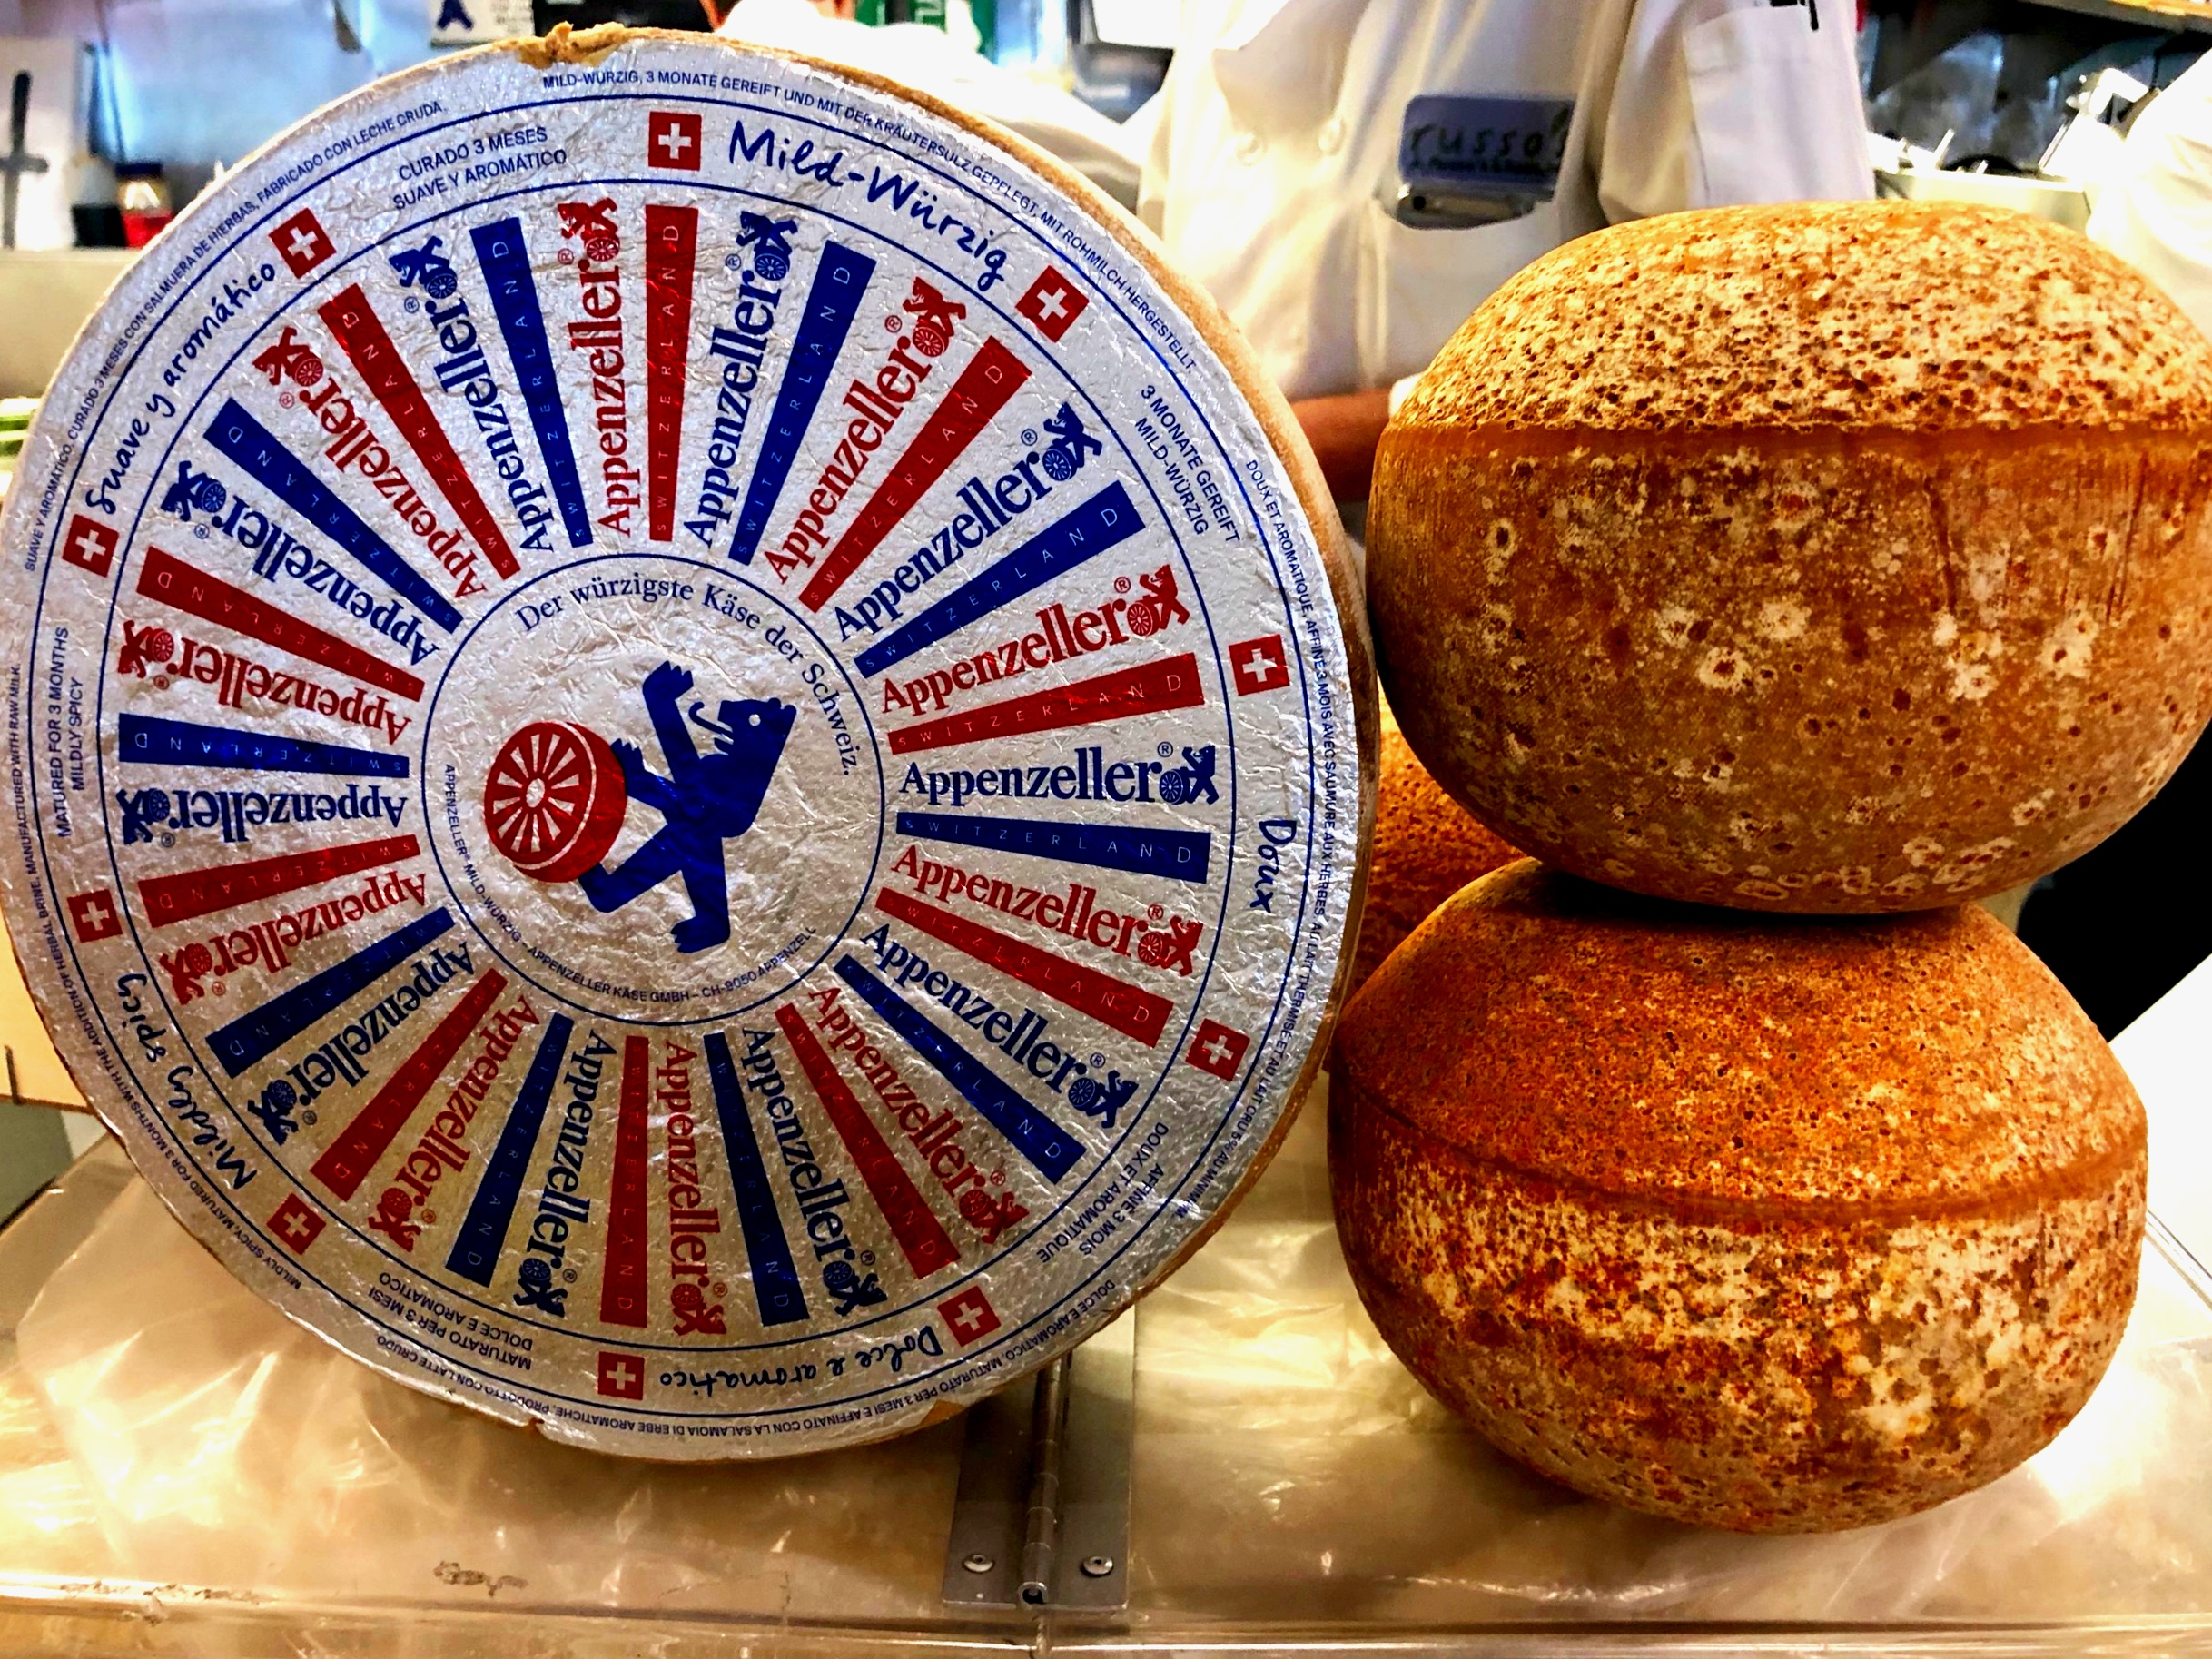 This week's special cheeses, including Mimolette which is one of the more interesting looking cheeses we have seen!